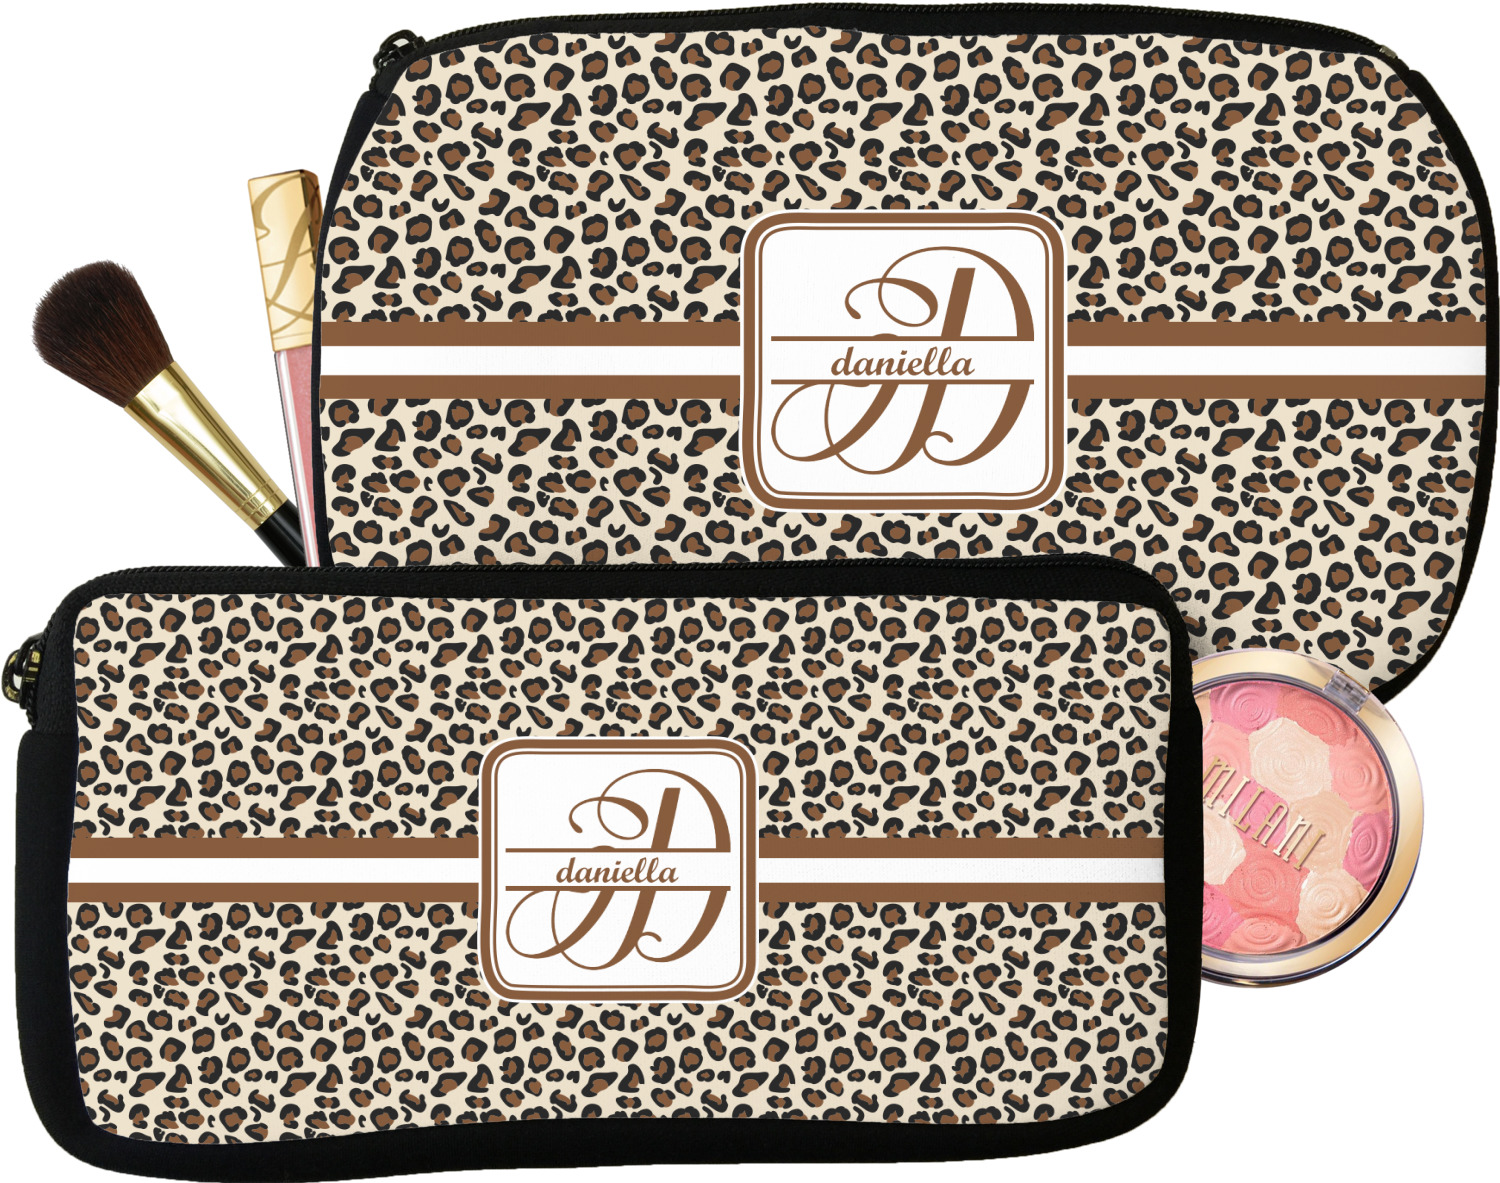 daeaa6c852a1 Leopard Print Makeup   Cosmetic Bag (Personalized) - YouCustomizeIt